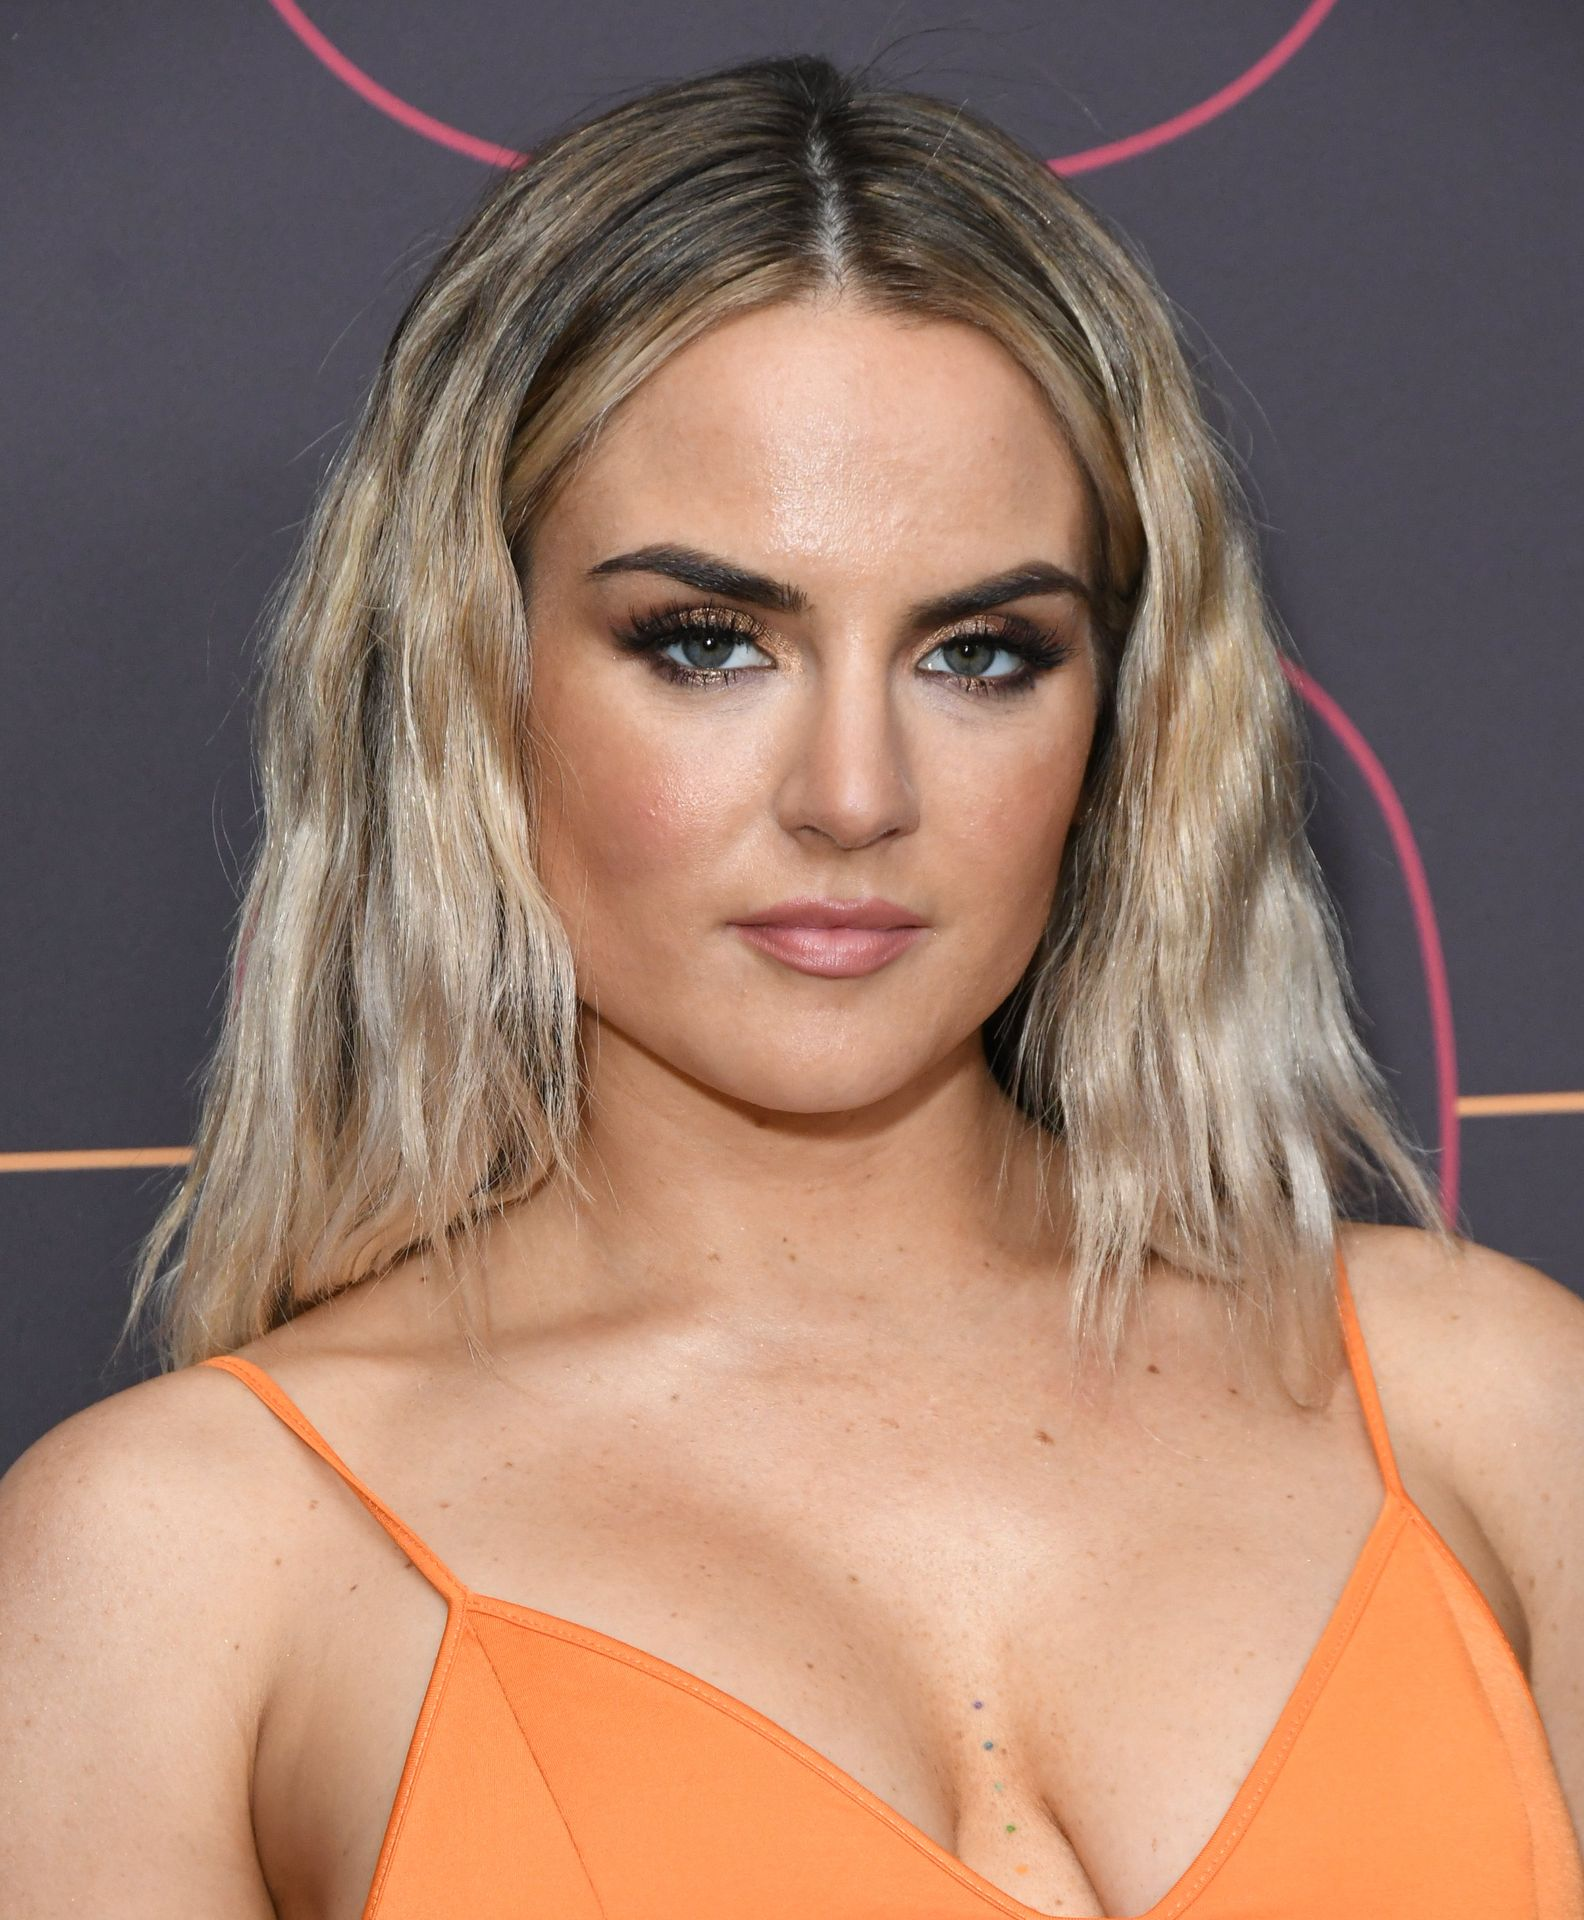 Jojo Shows Off Her Tits At The Warner Music Group Pre Grammy Party In Hollywood 0033